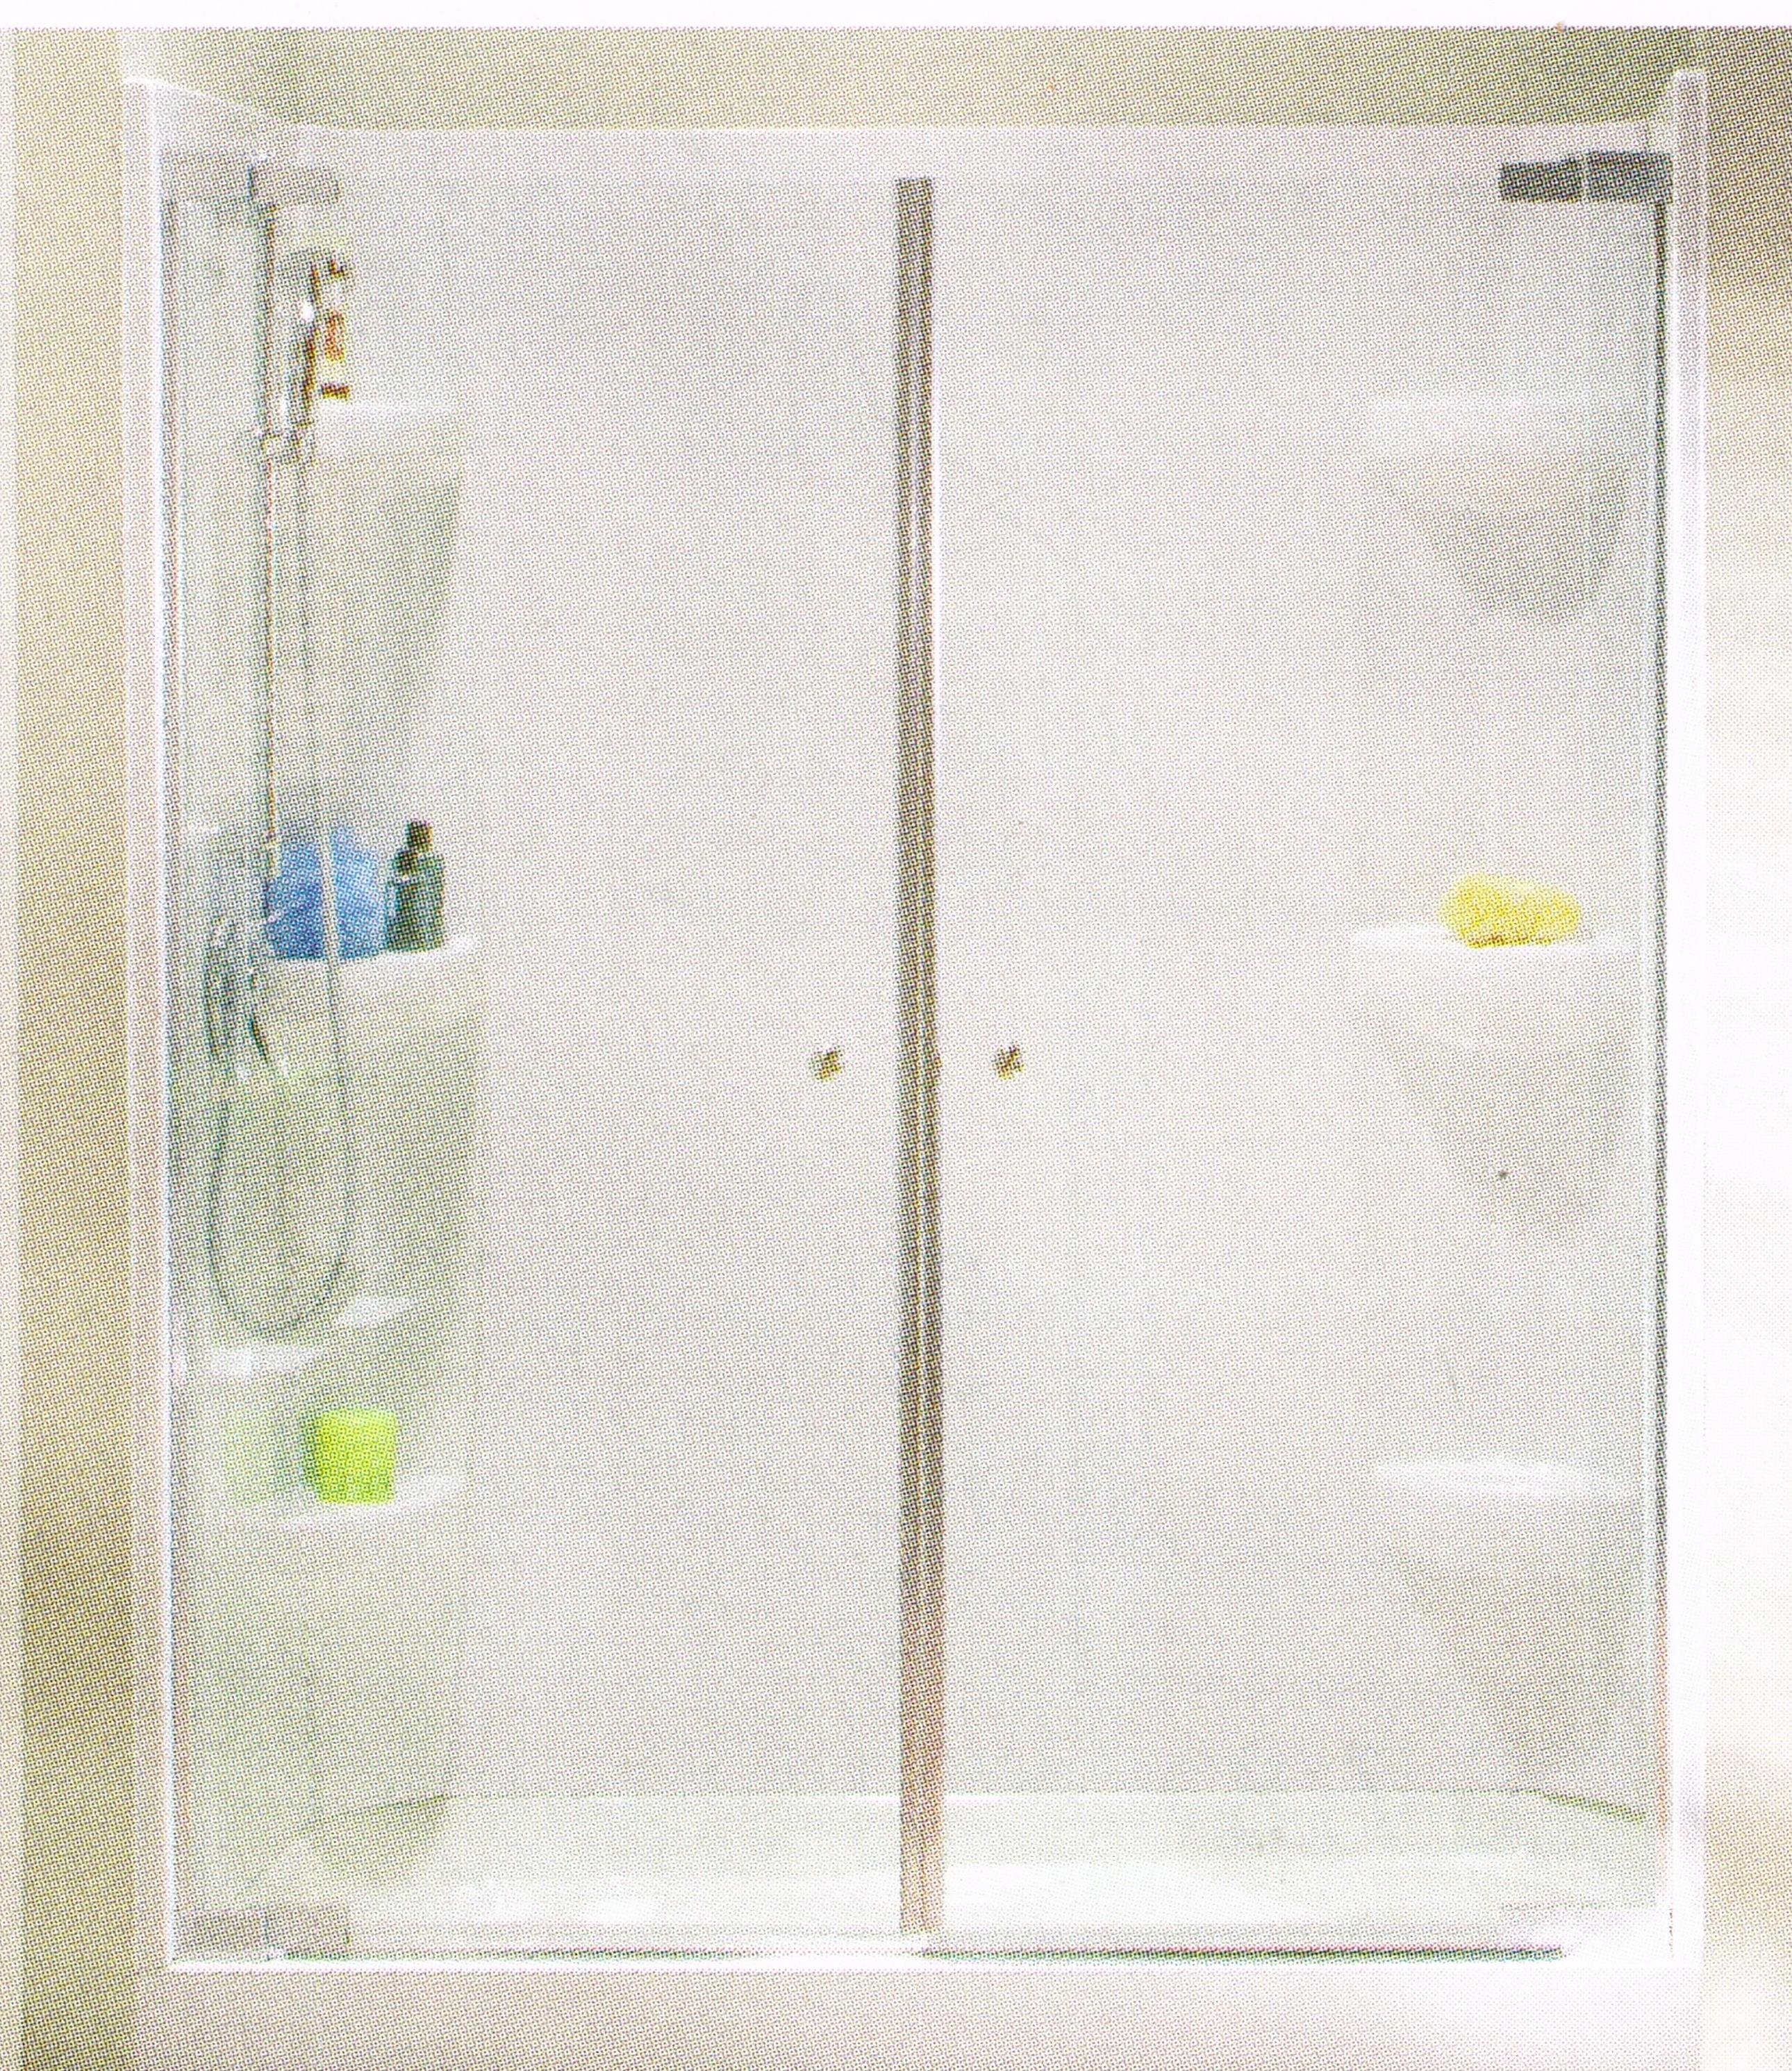 Rectangular Shower base 4236 by Maax 2 sizes | American Tub Factory